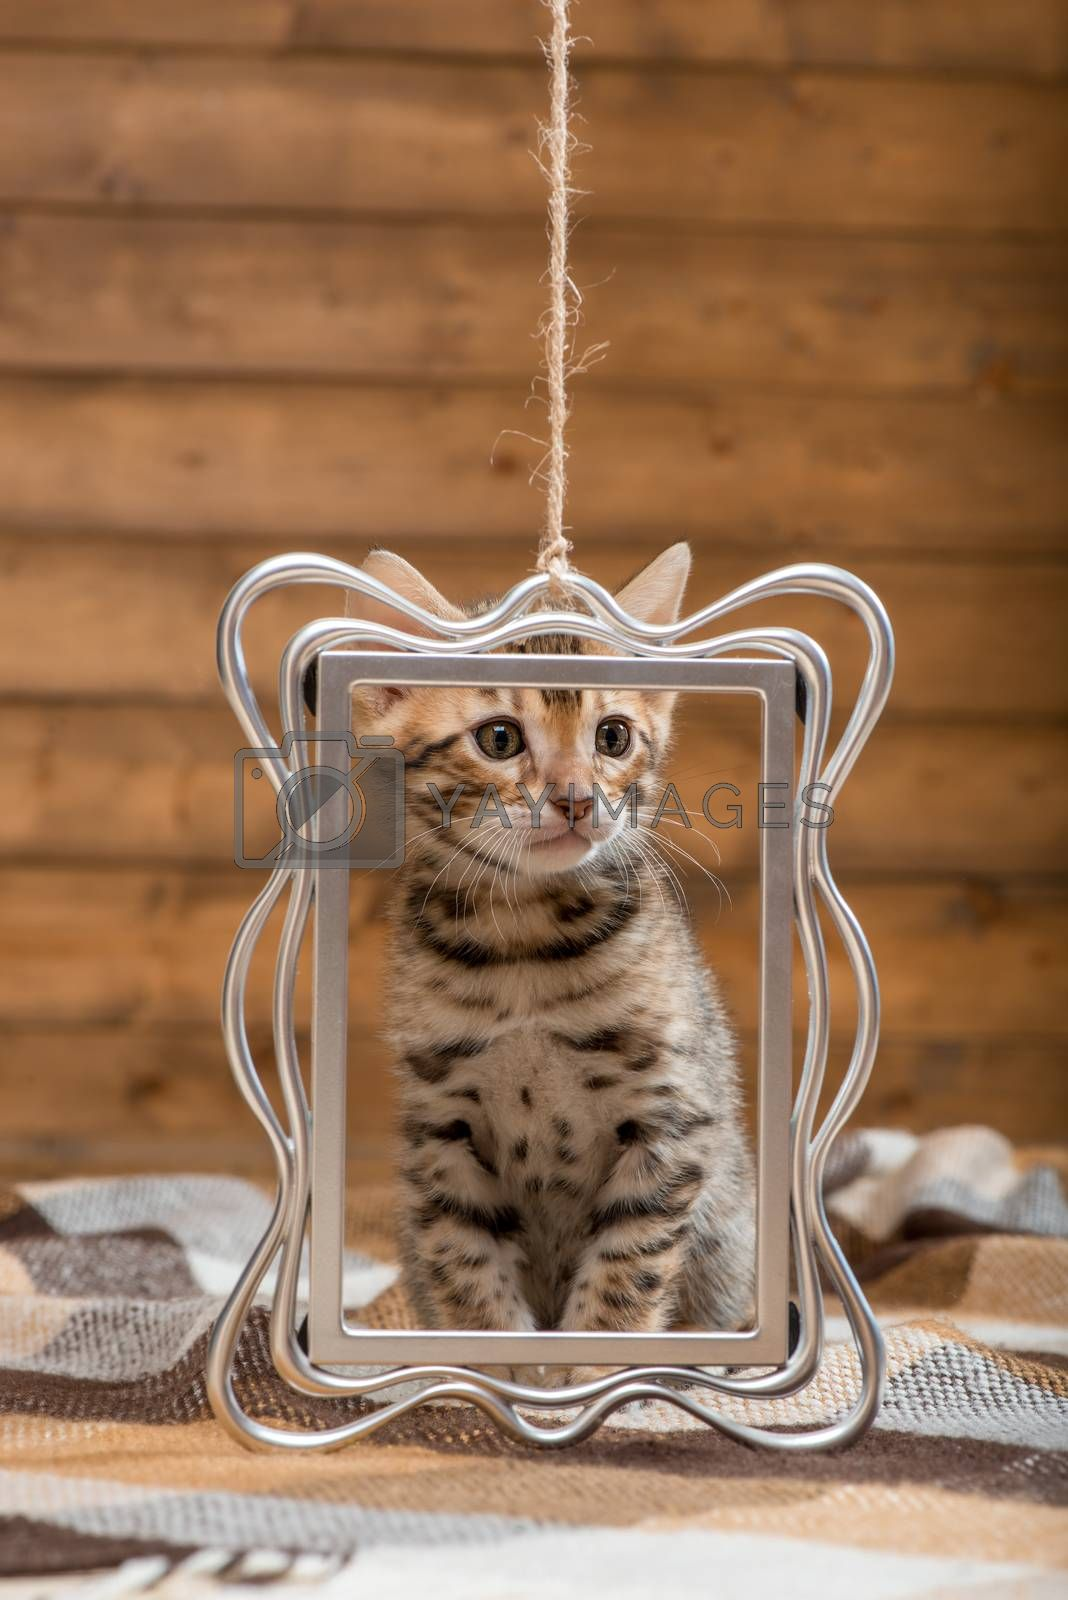 portrait of a Bengal breed kitten with a silver frame by Labunskiy K.